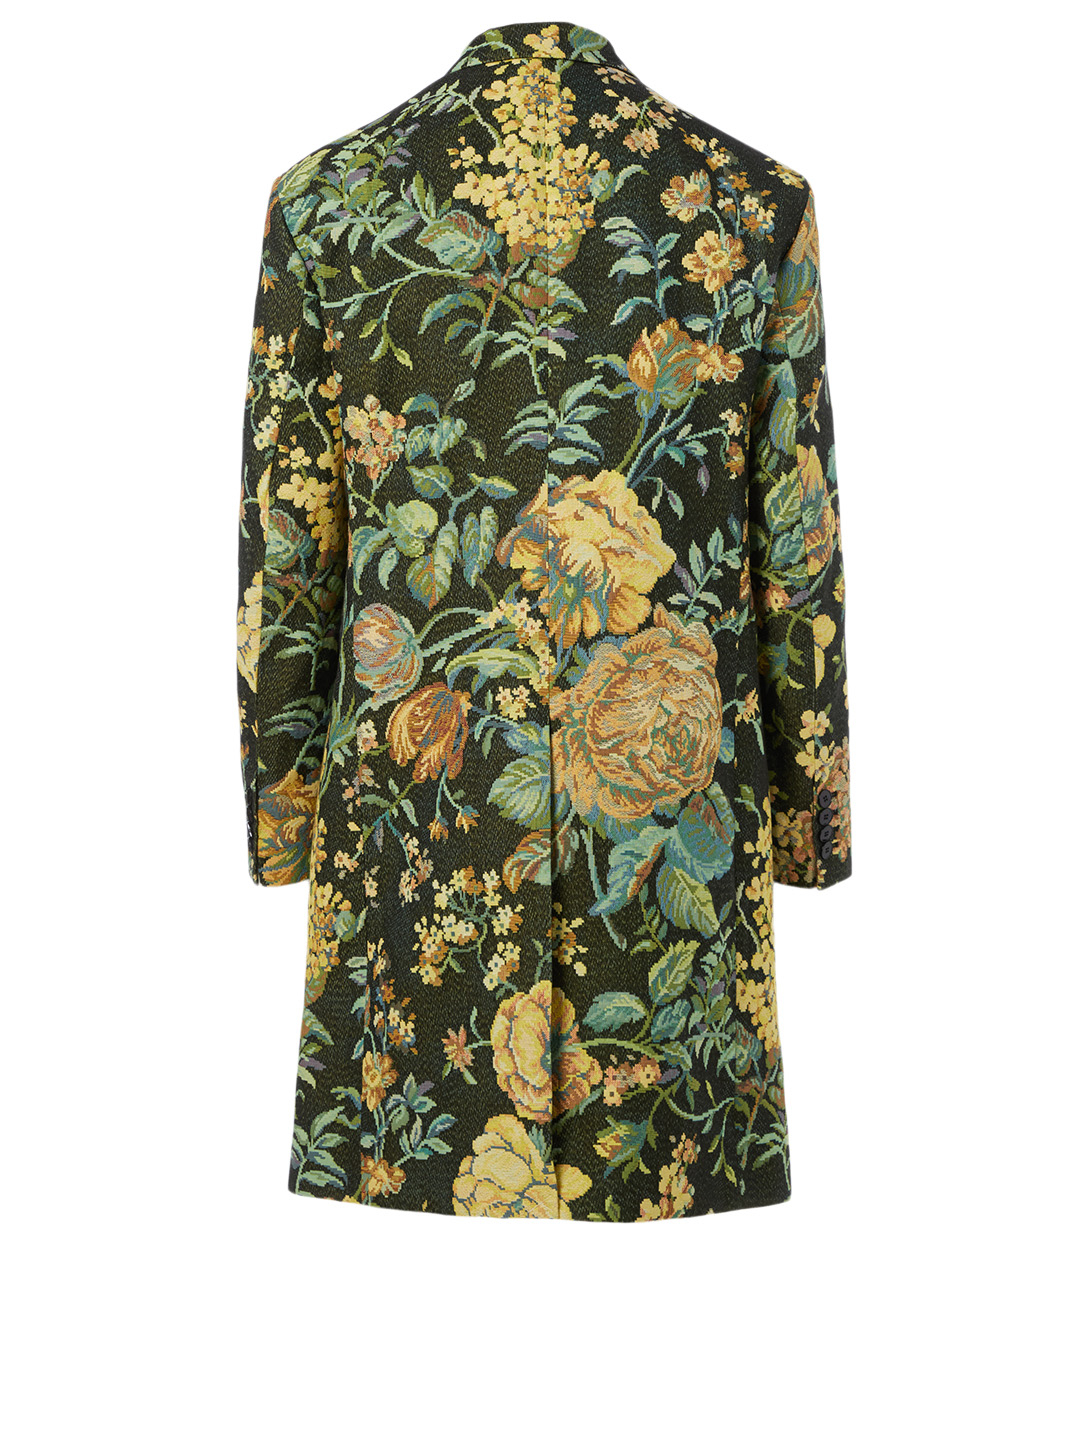 GIVENCHY Jacquard Oversized Coat In Floral Print Men's Black